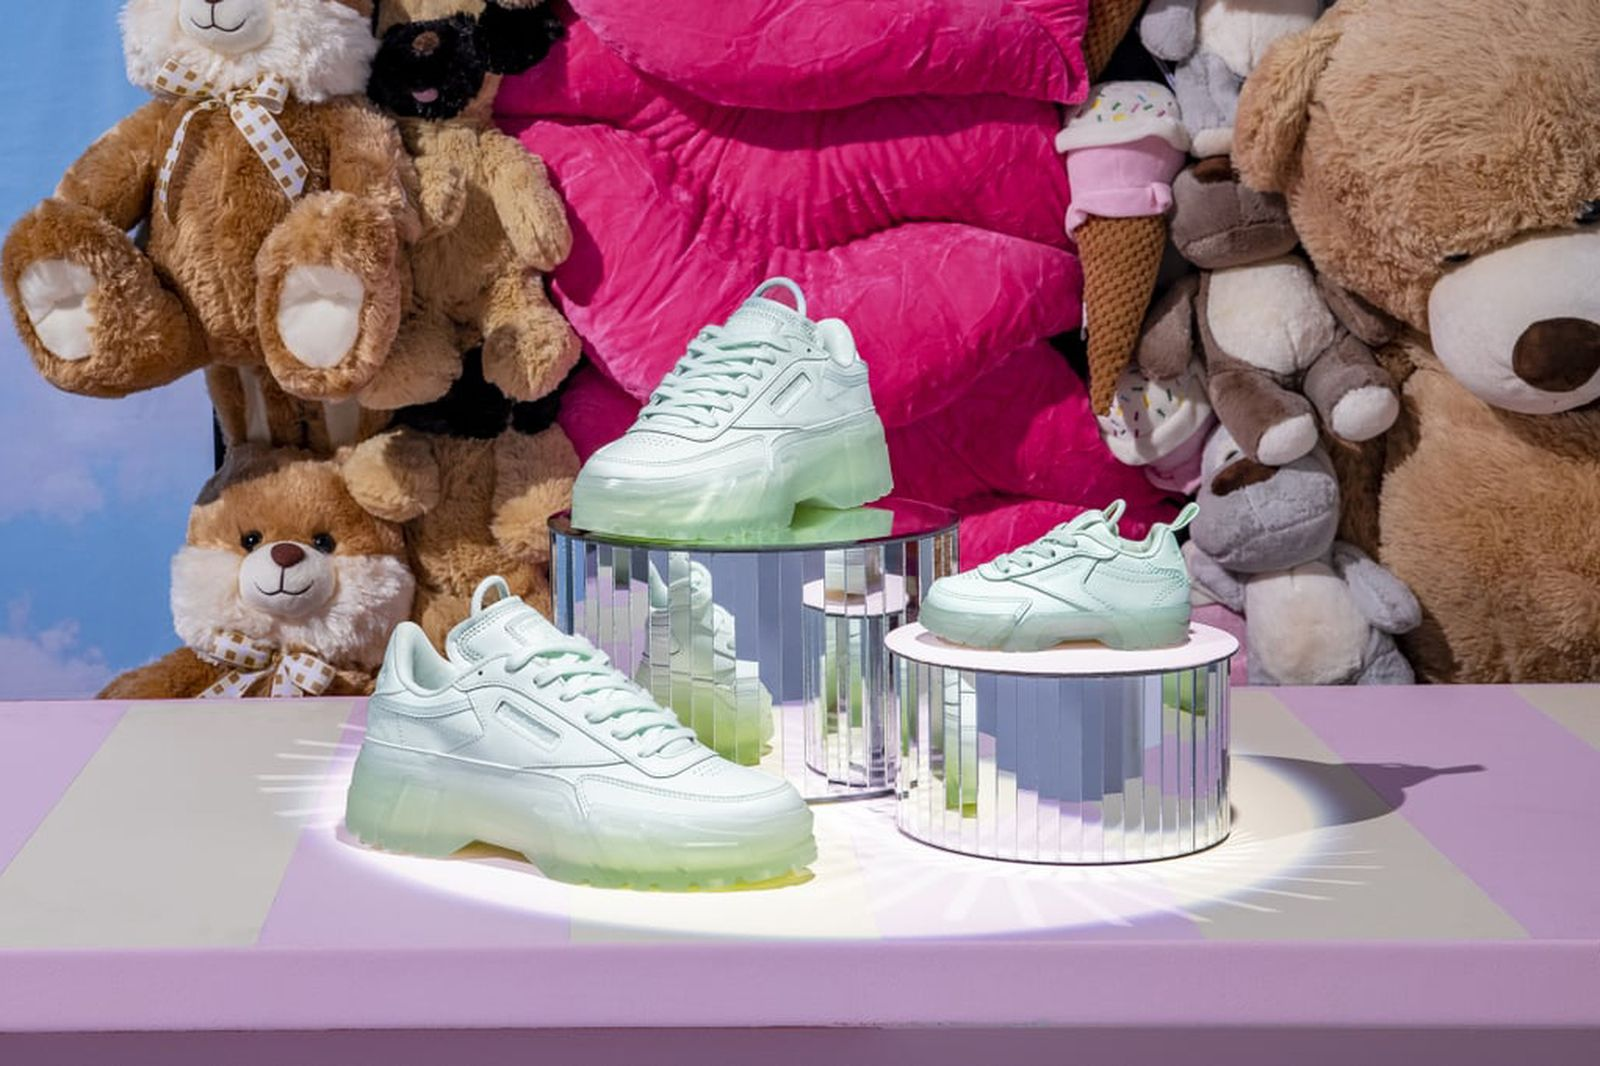 cardi-b-reebok-mommy-and-me-sneaker-collaboration- (12)